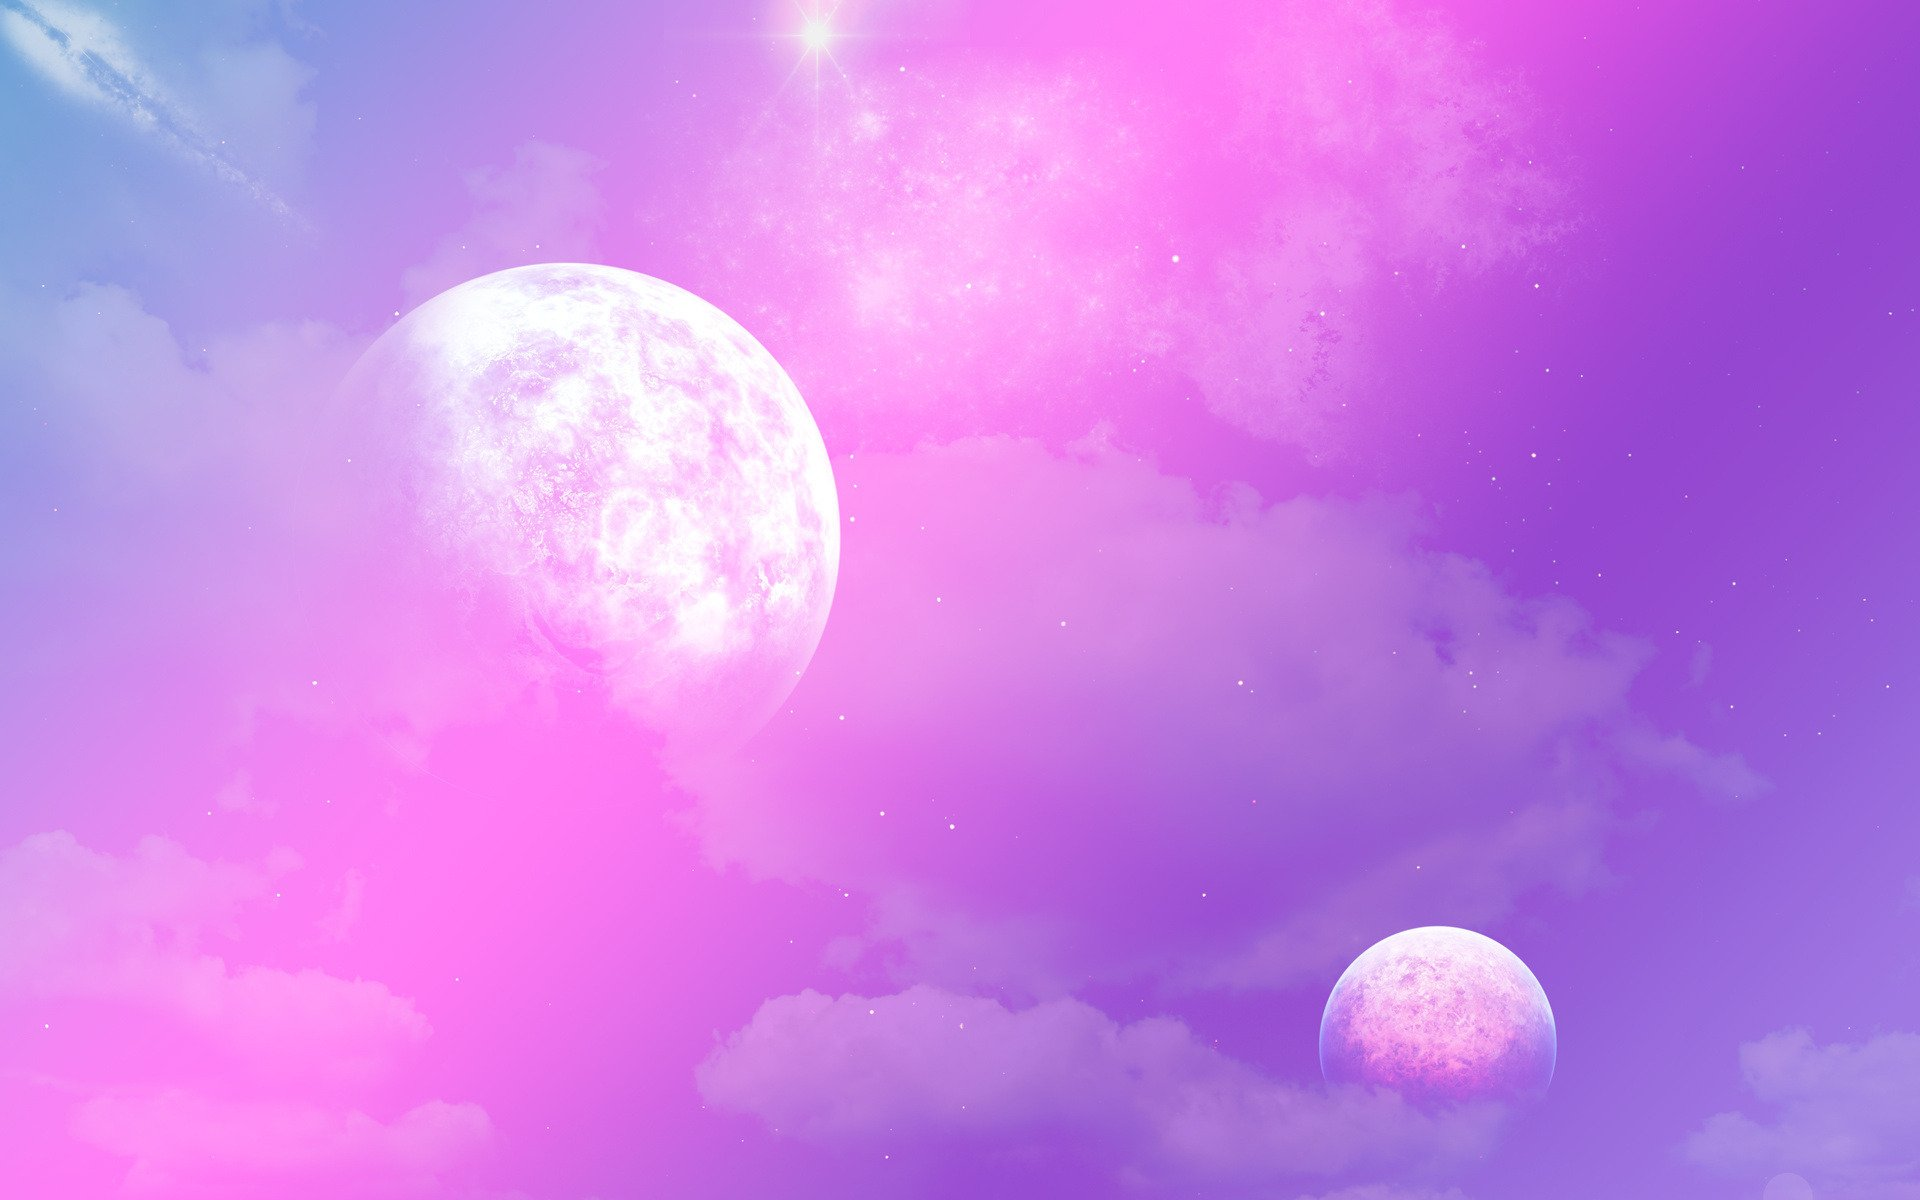 pink planet images - HD 1920×1200